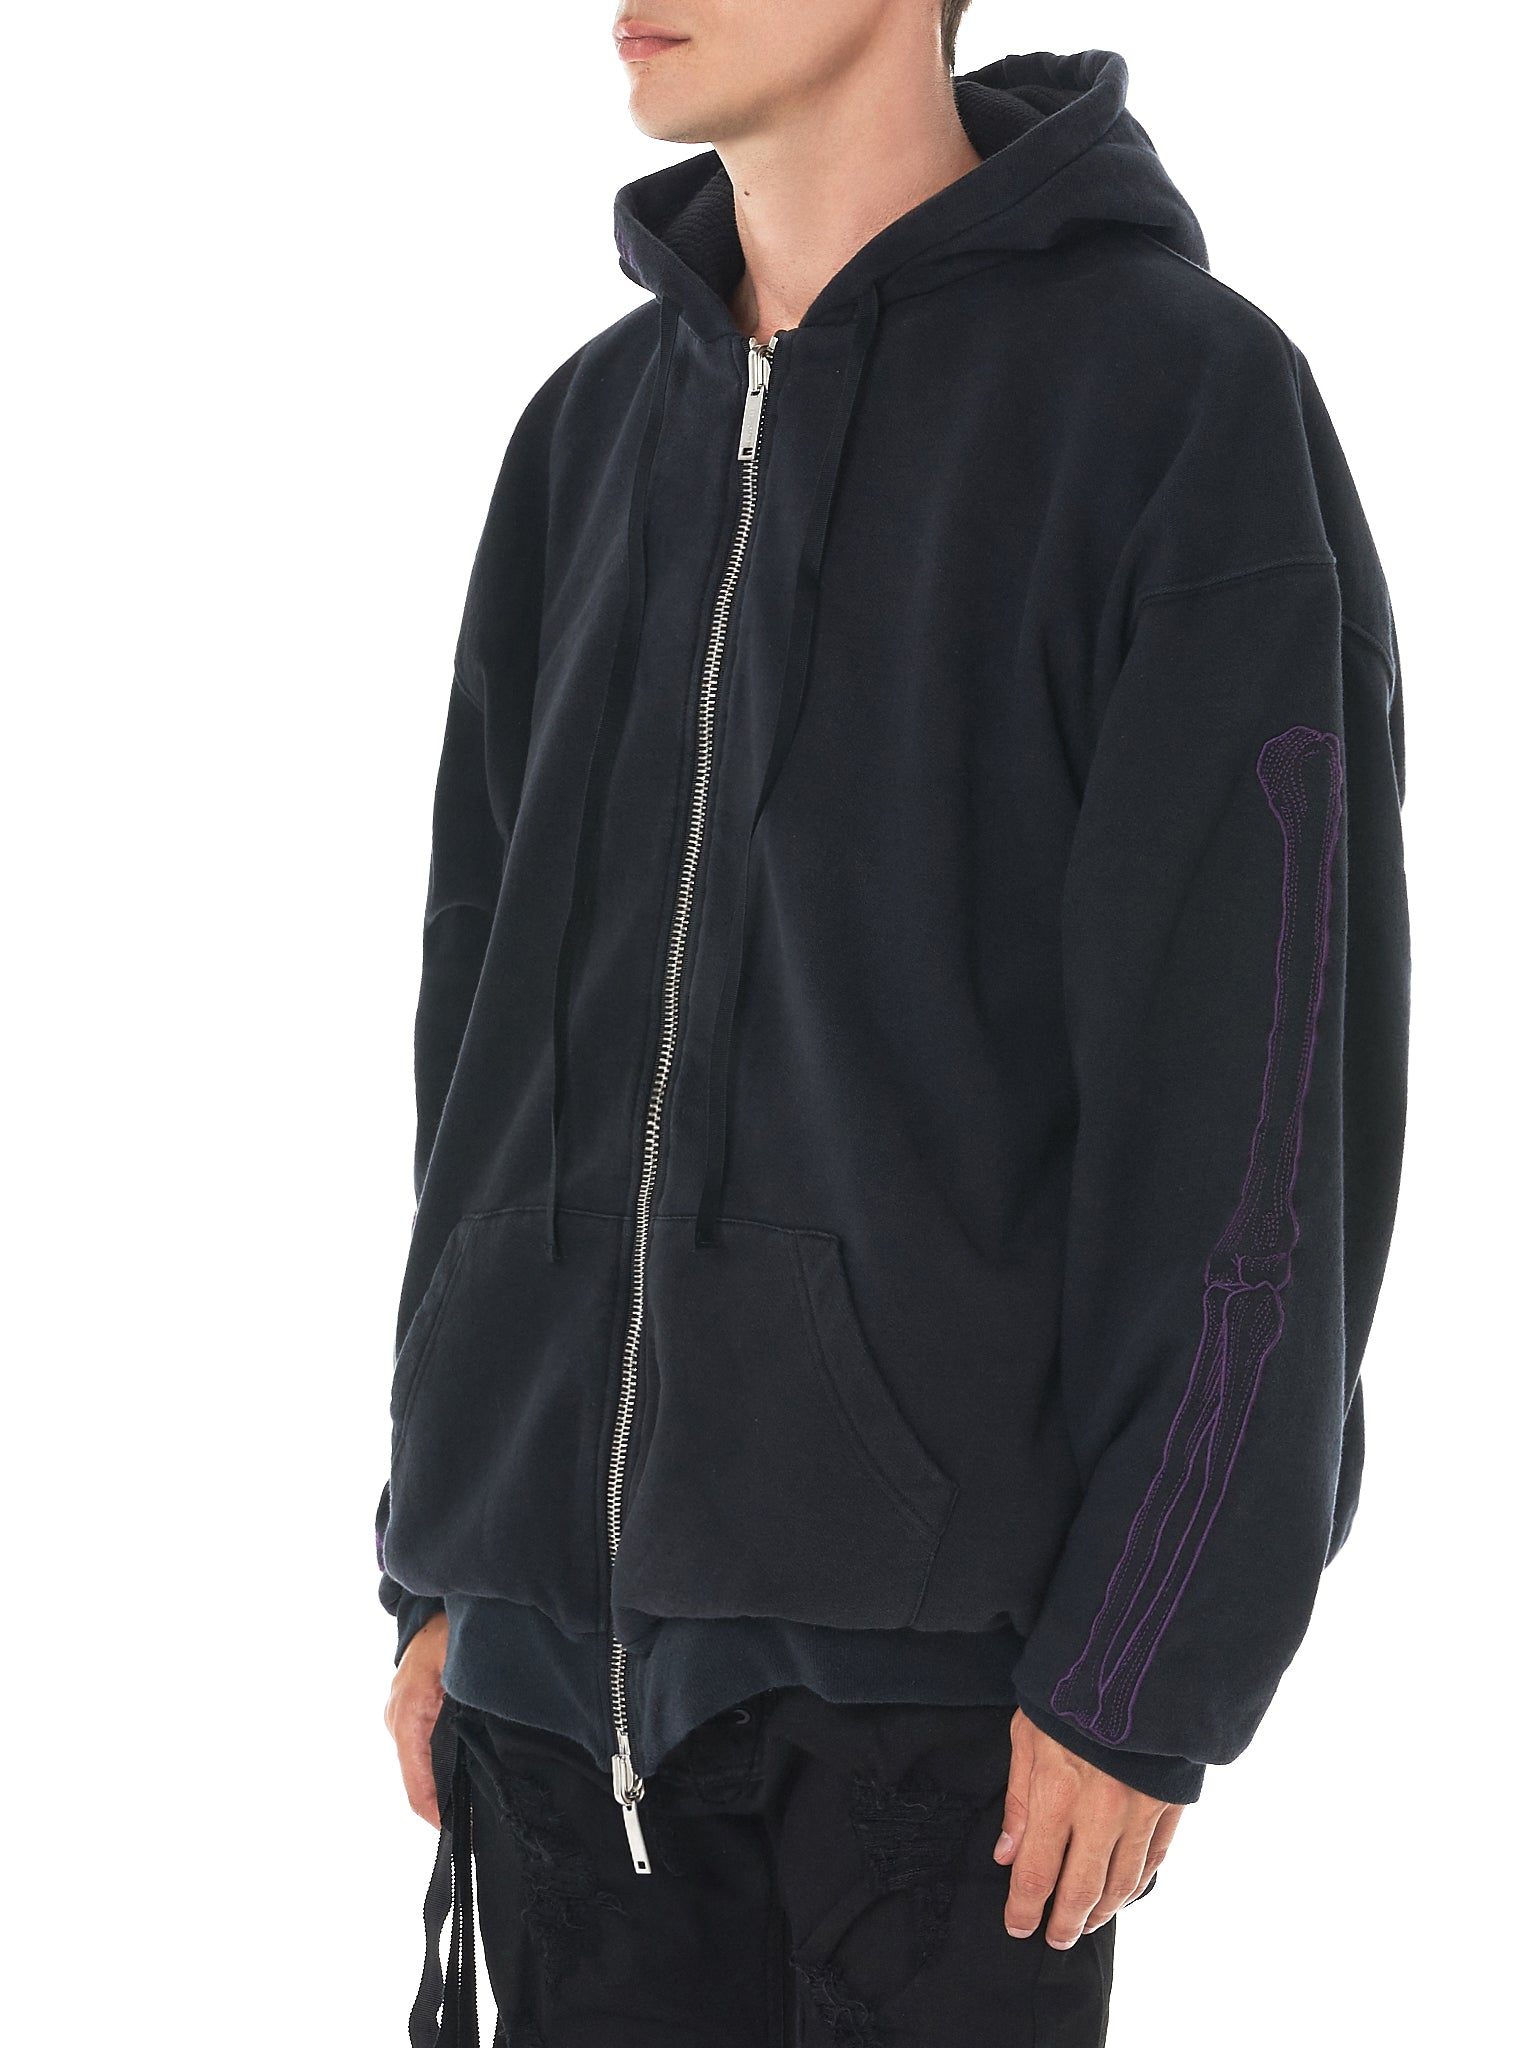 Embroidery Hooded Sweater (UMBB013F17154005-BLACK)